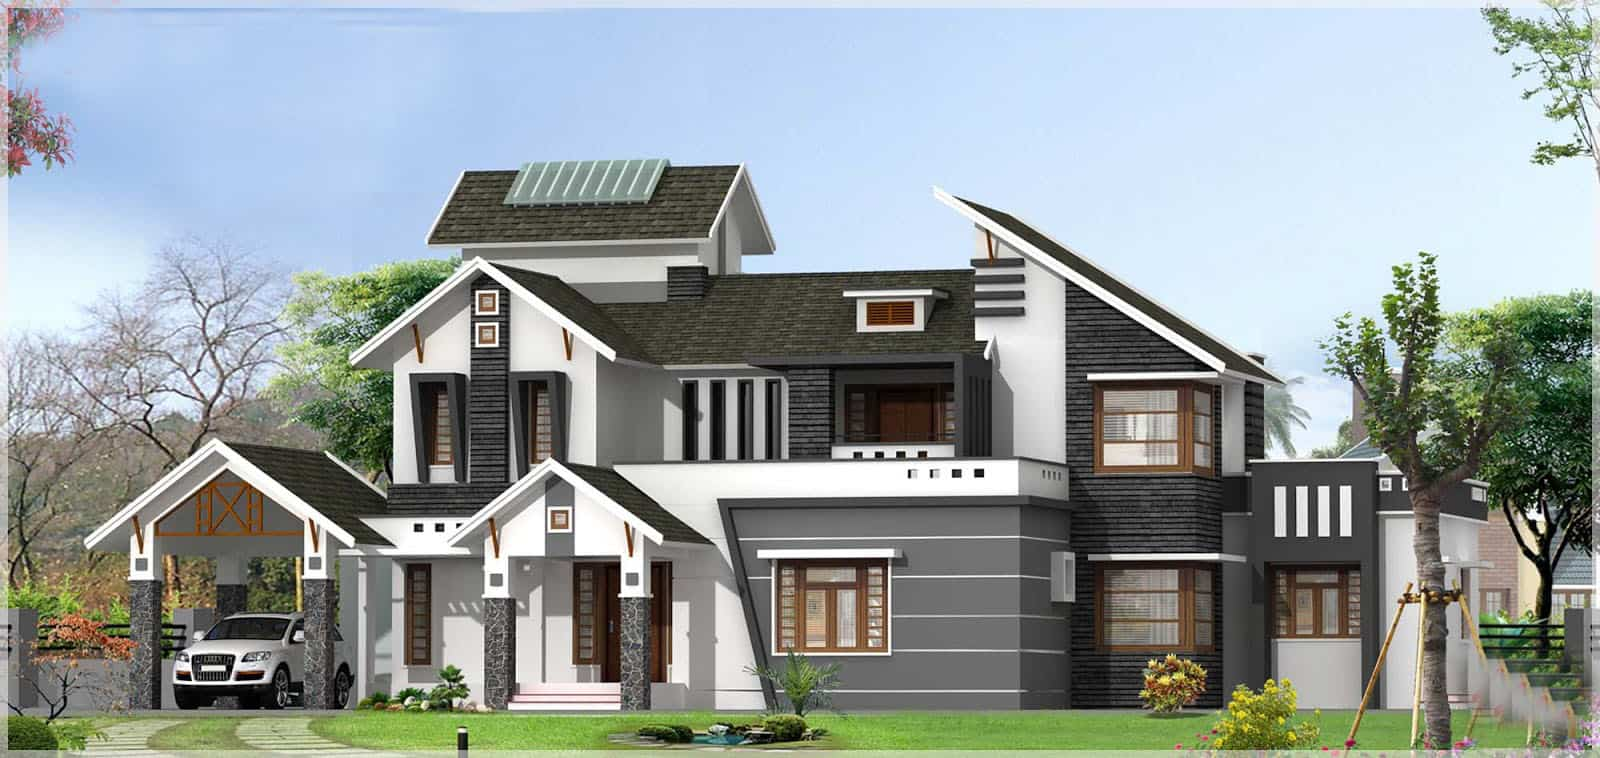 Sloping roof kerala house design at 3136 with pergolas House design images